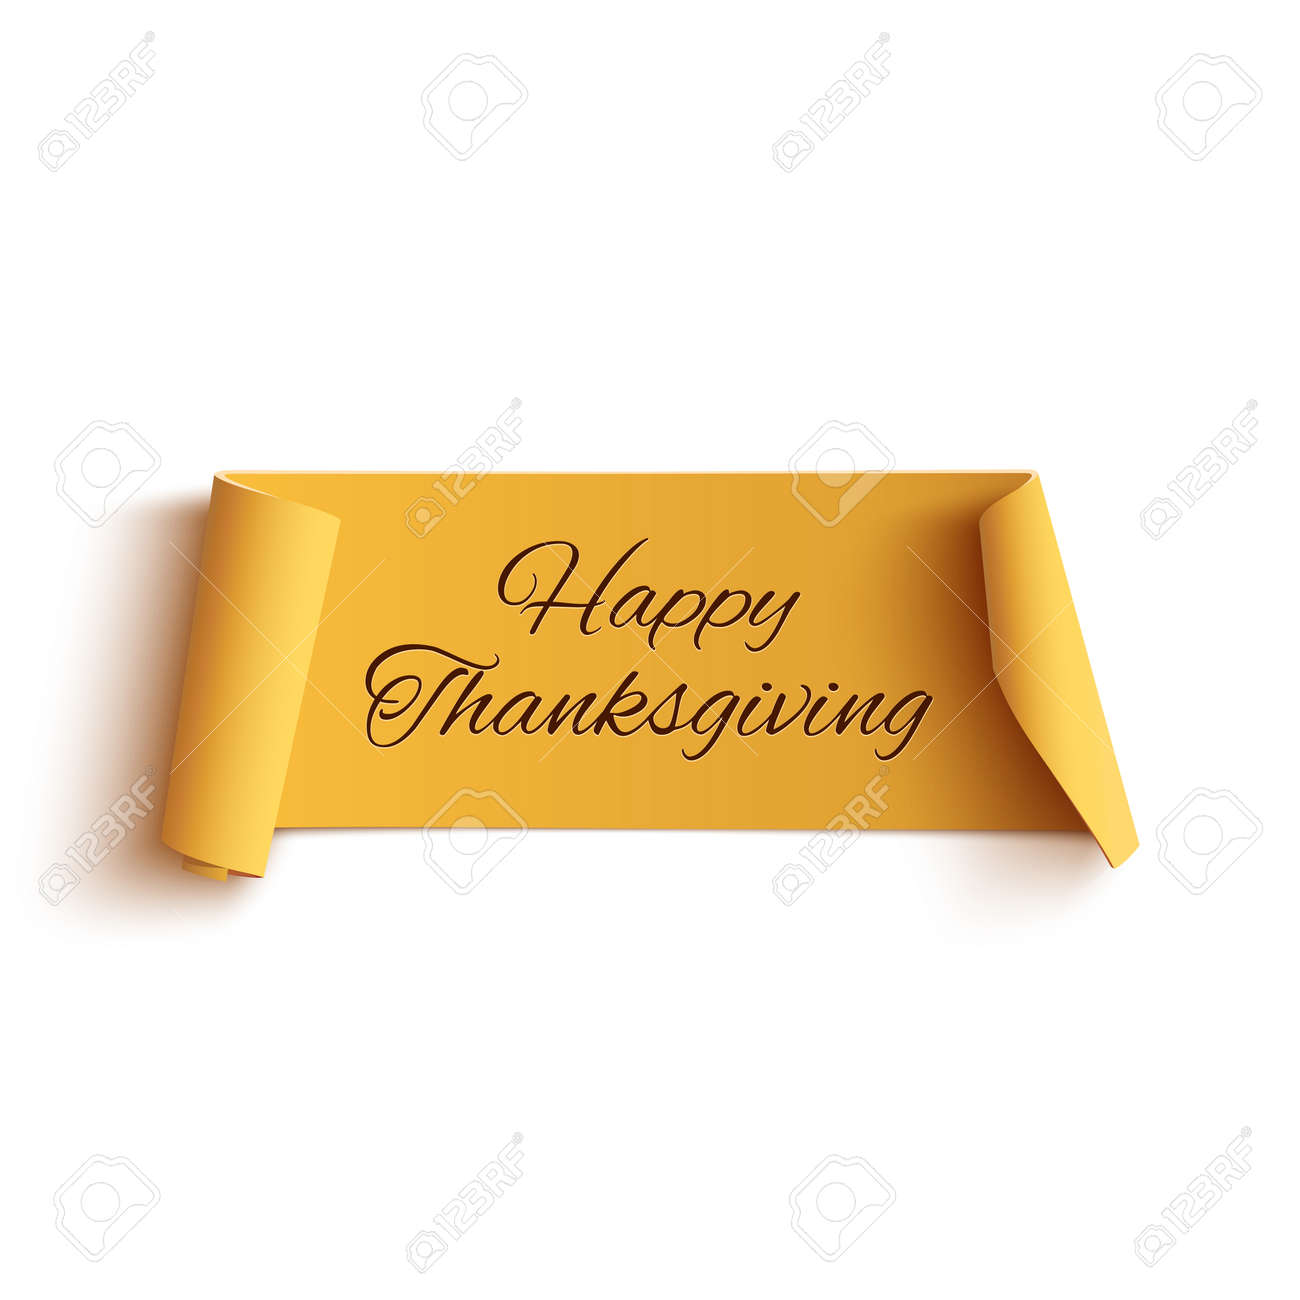 Happy Thanksgiving Banner Stock Photos & Pictures. Royalty Free ...